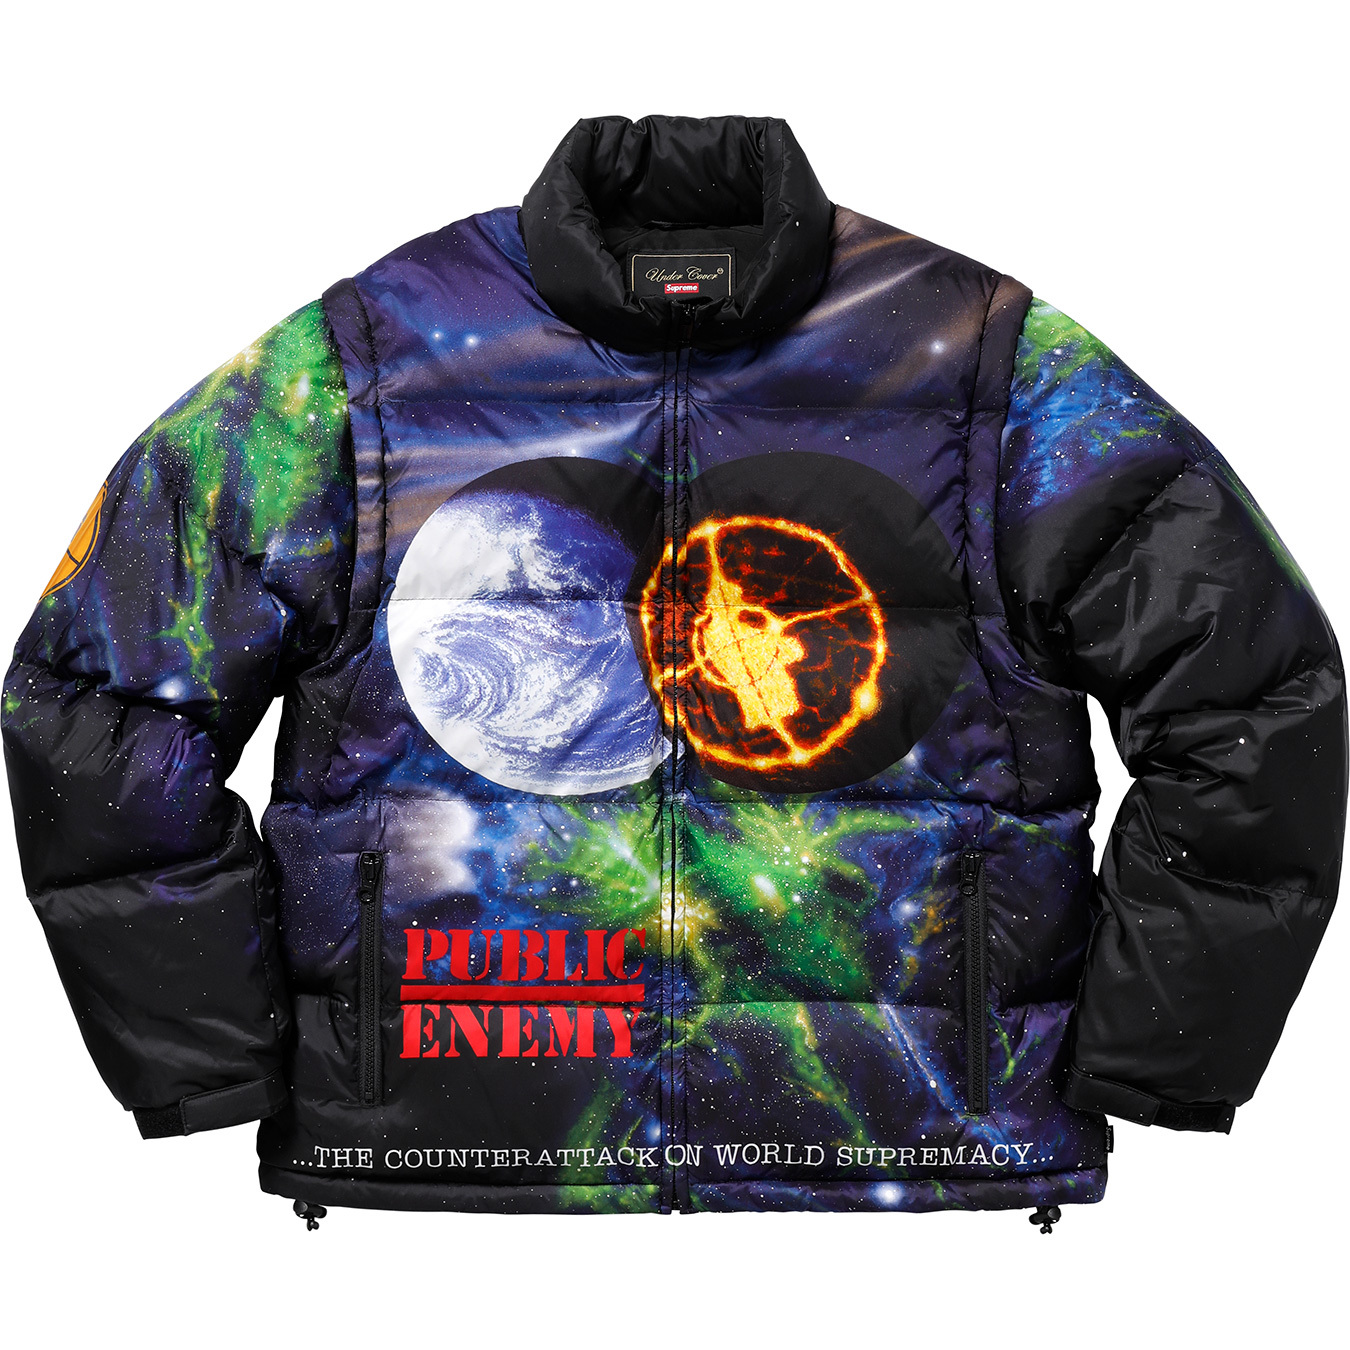 supreme-undercover-public-enemy-18ss-week4-release-20180317-puffy-jacket-with-removable-sleeves